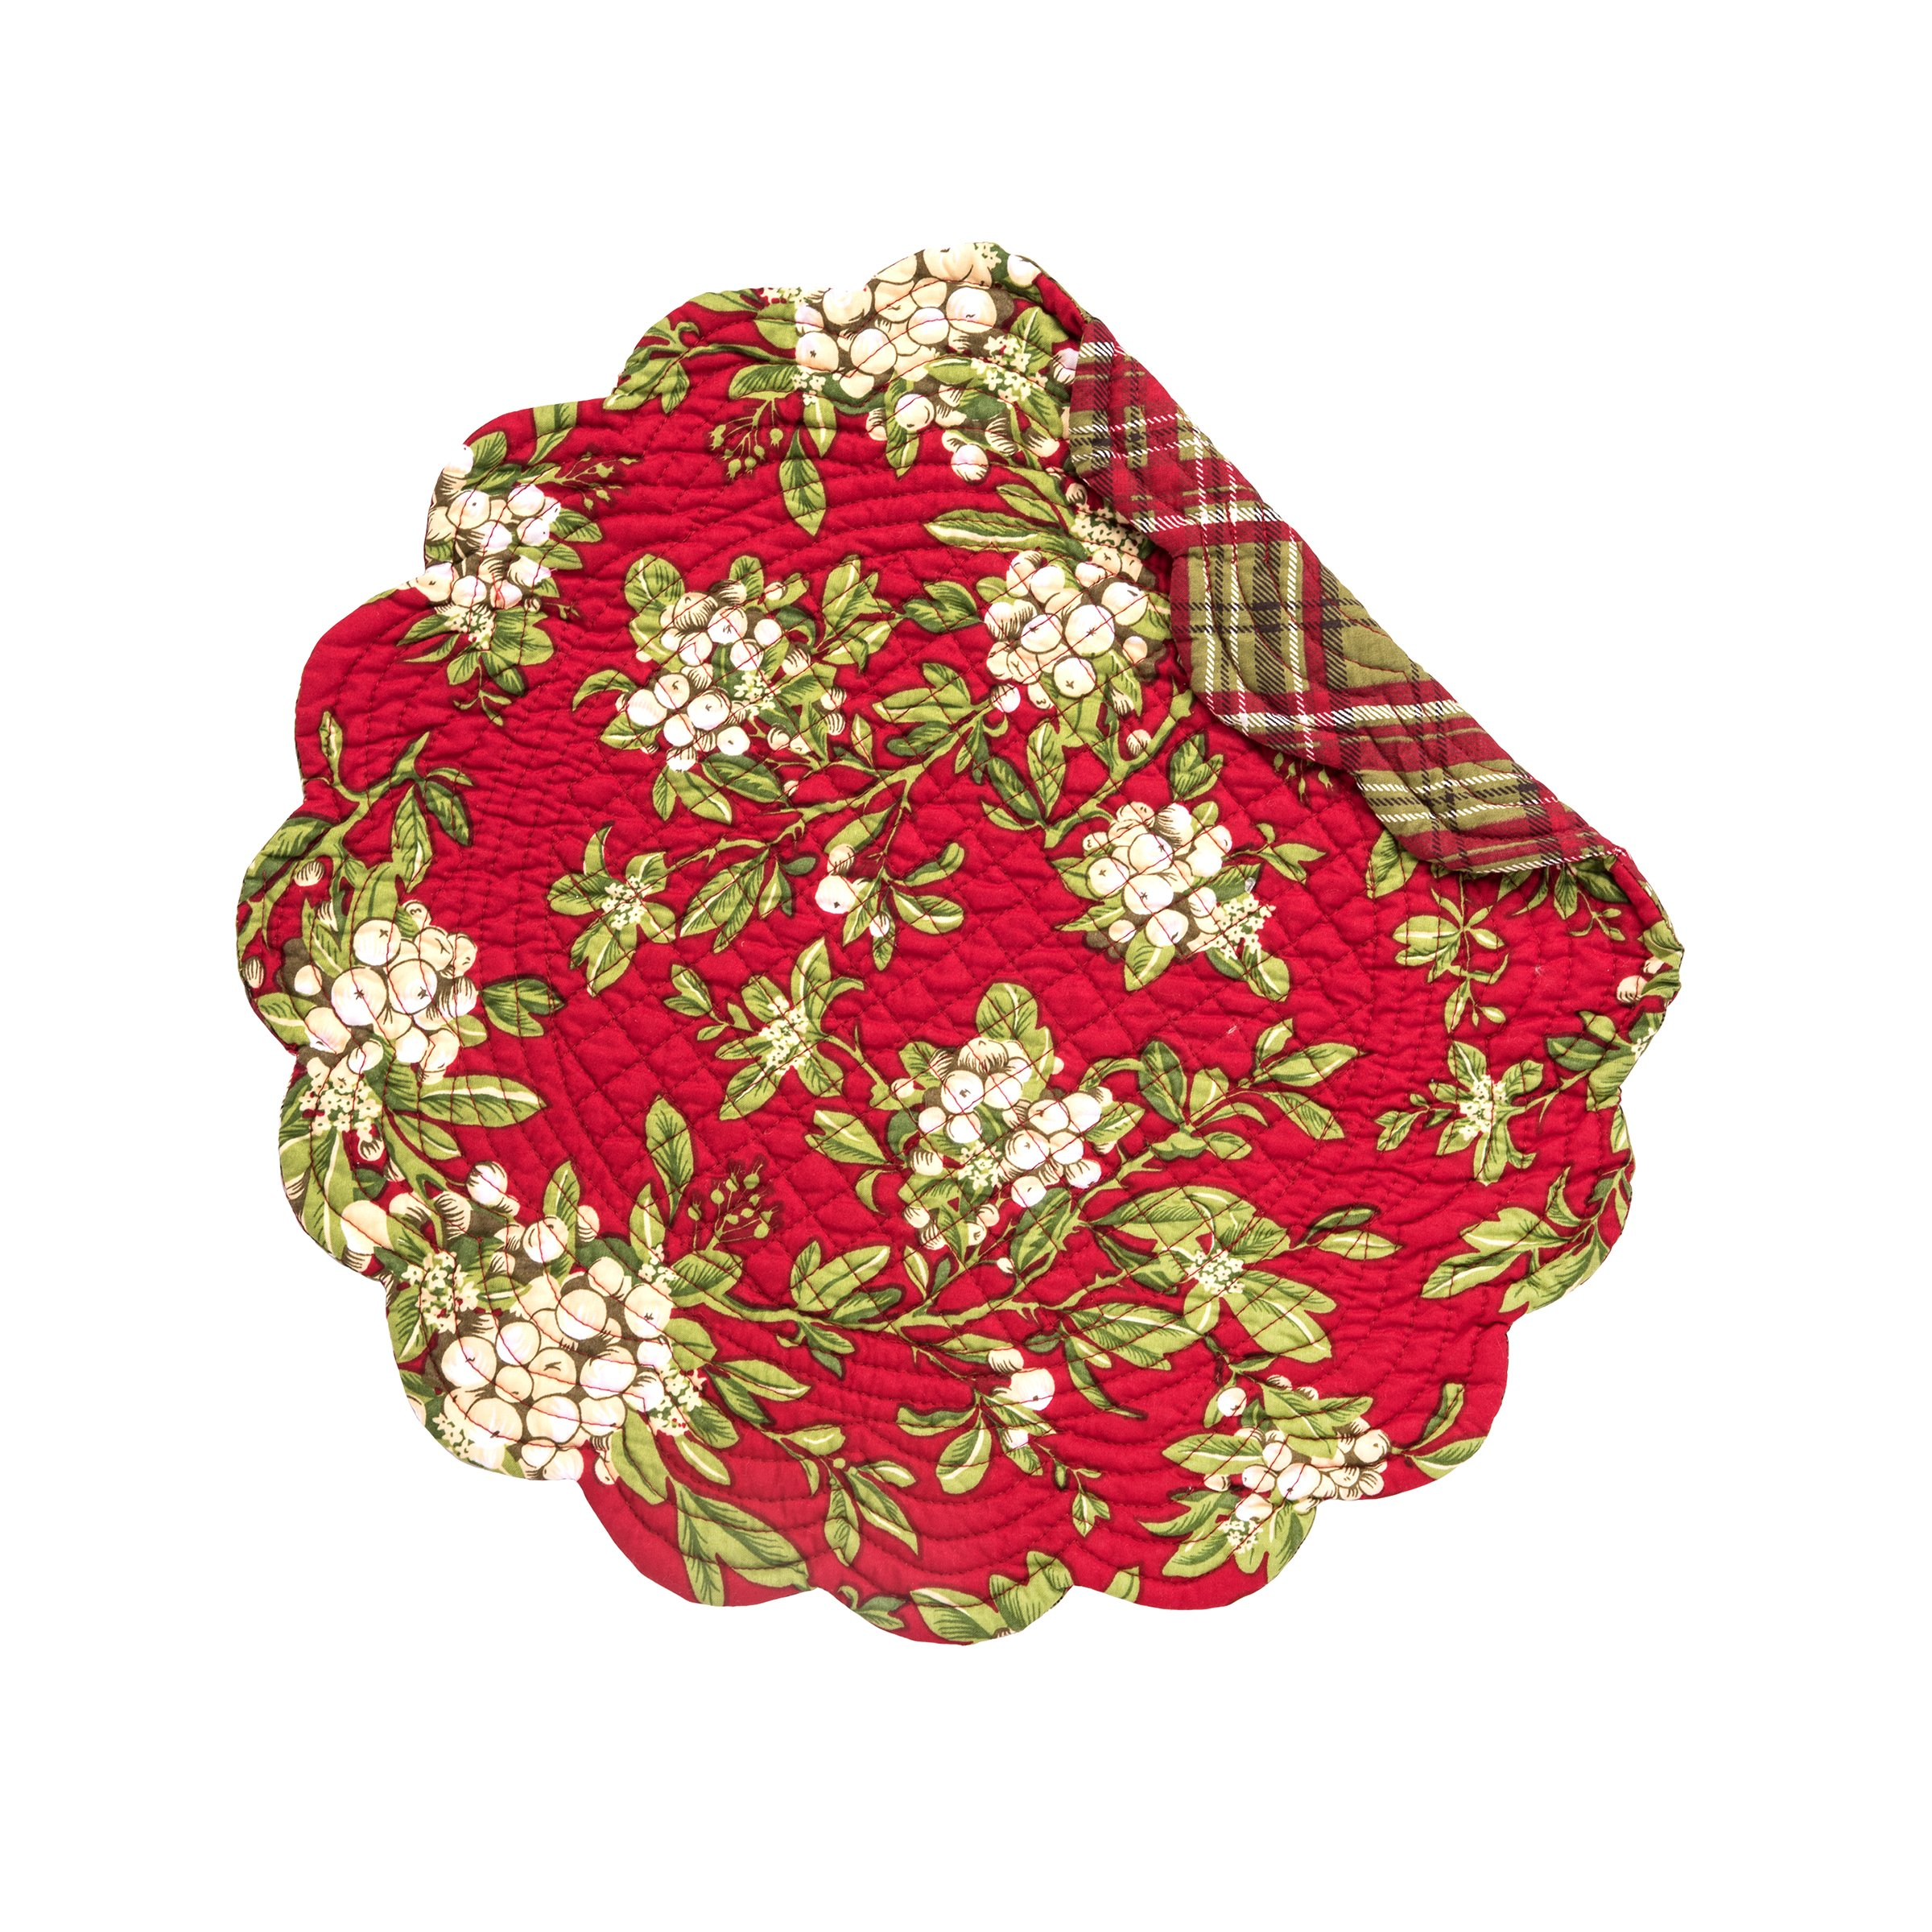 C&F Home Mistletoe Leaves Round Cotton Quilted Single Placemat Round Placemat